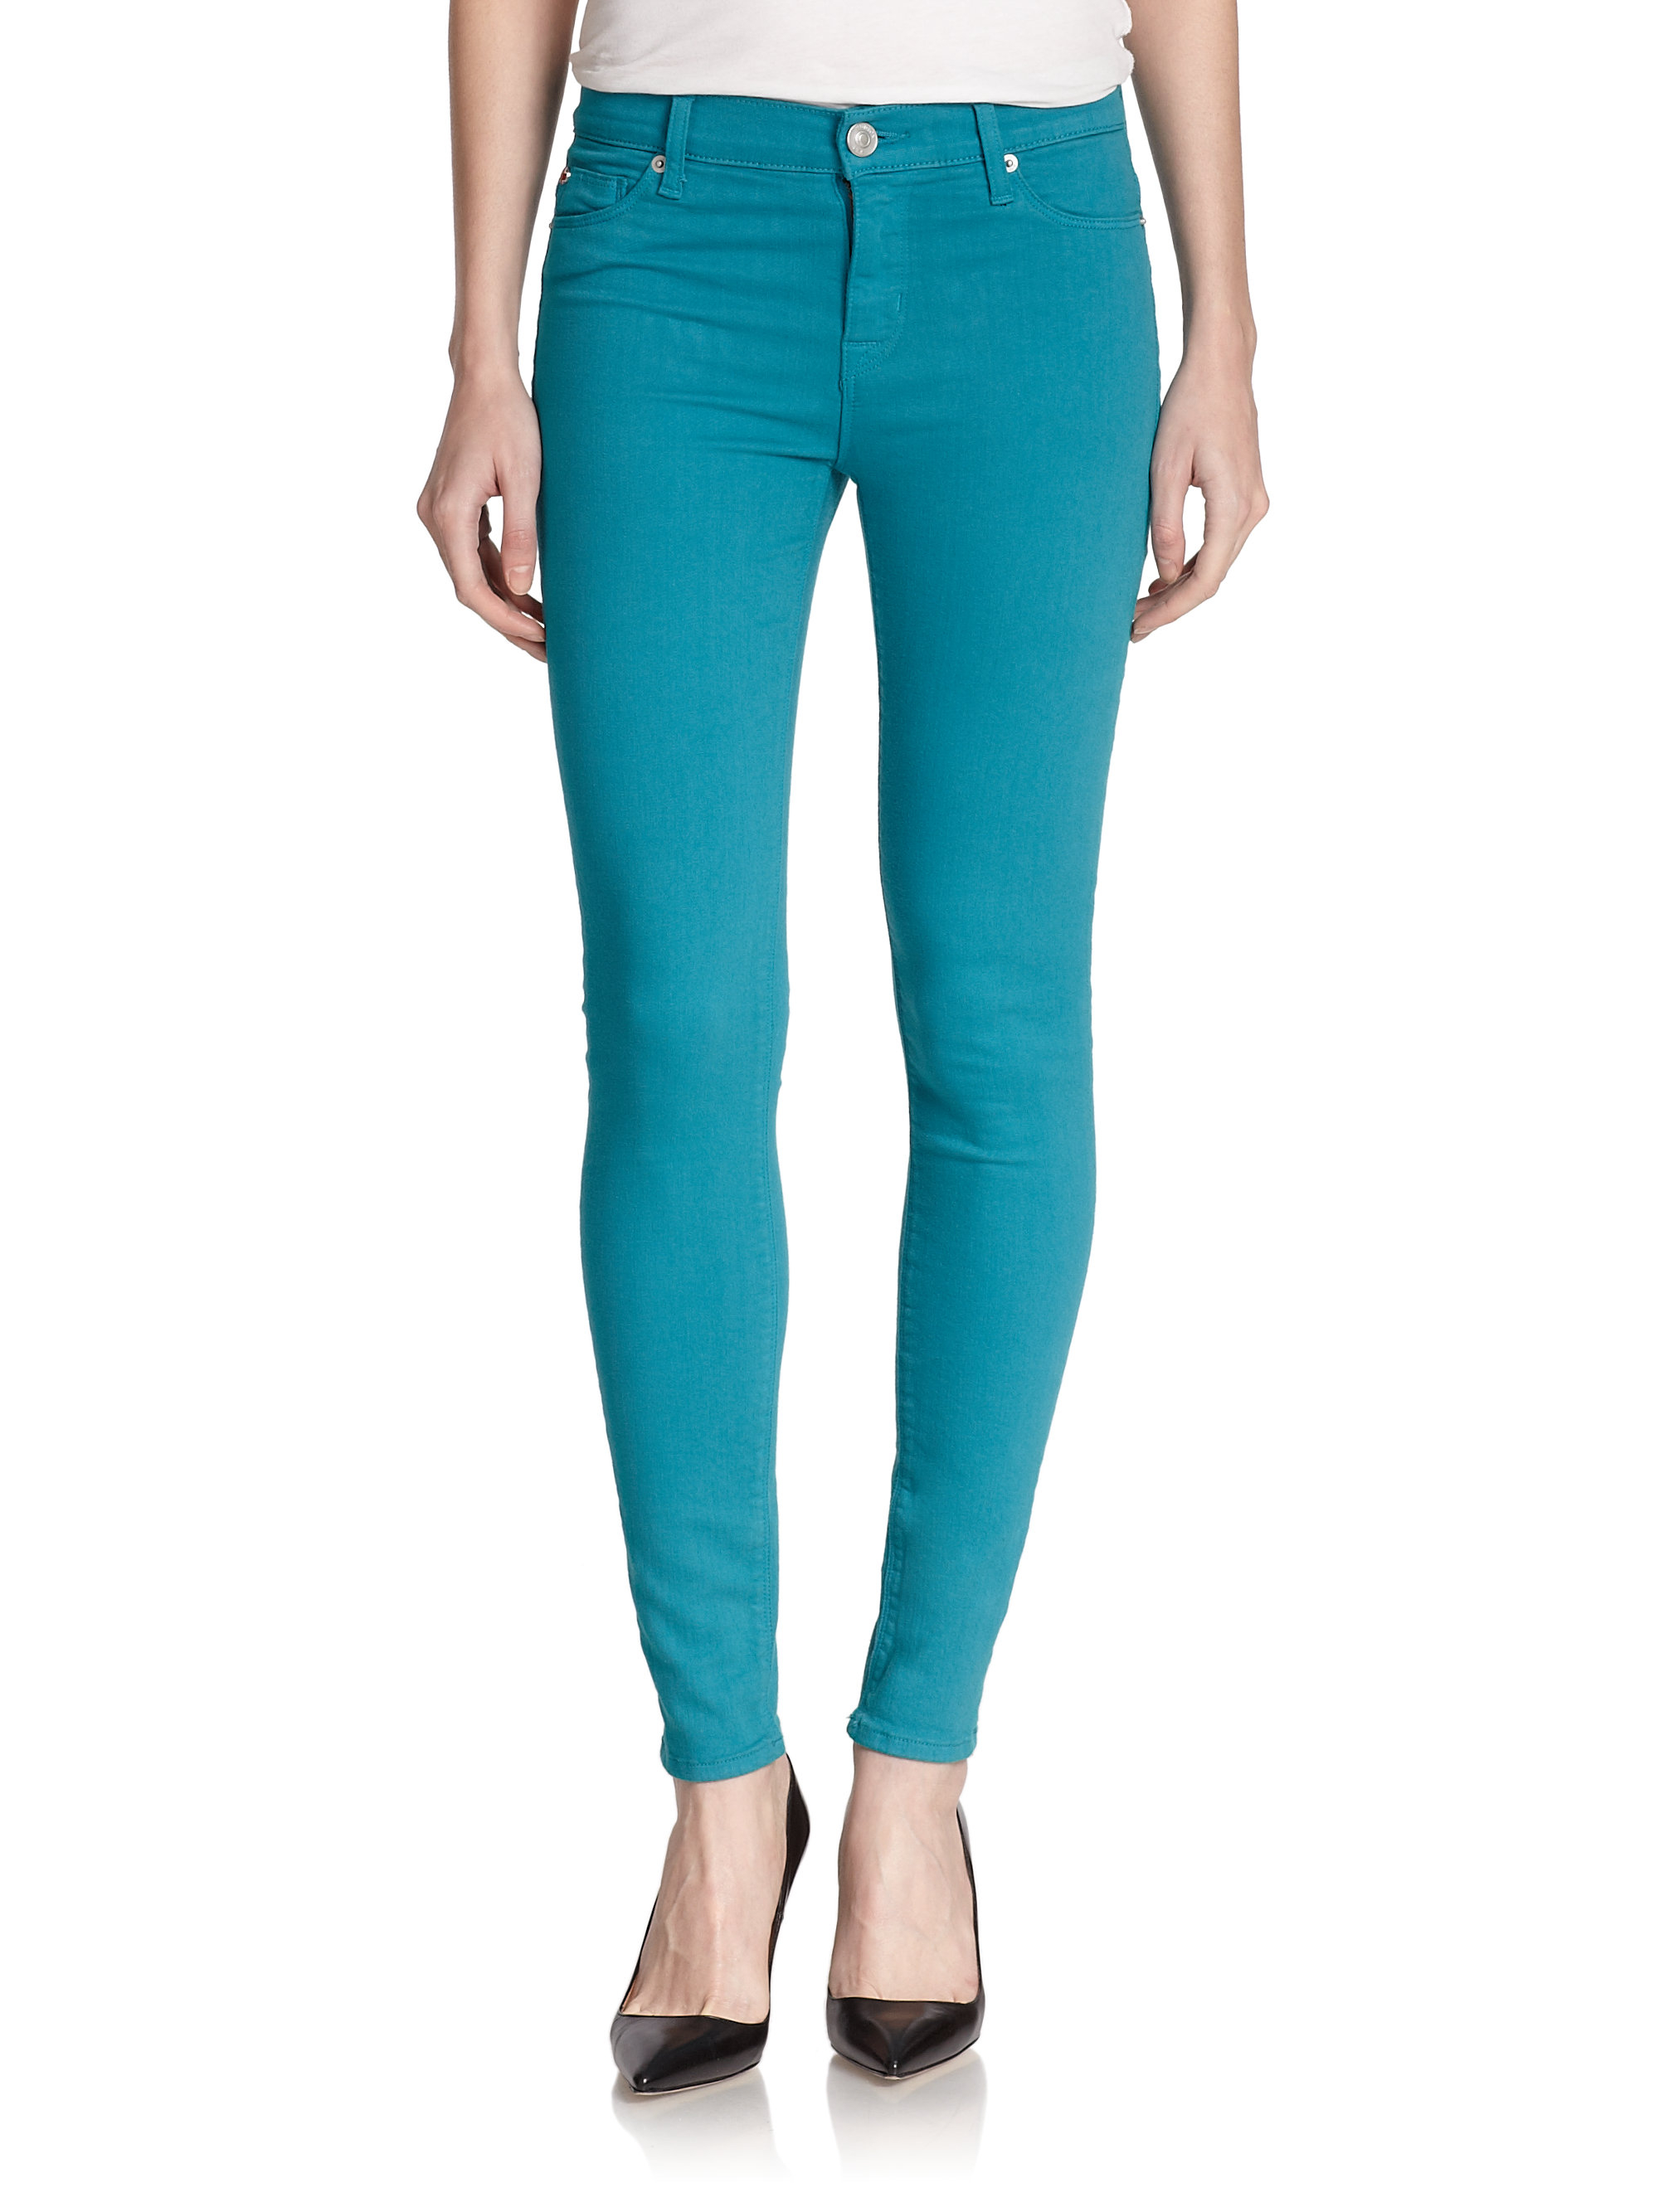 hudson nico super skinny jeans in teal marina lyst. Black Bedroom Furniture Sets. Home Design Ideas